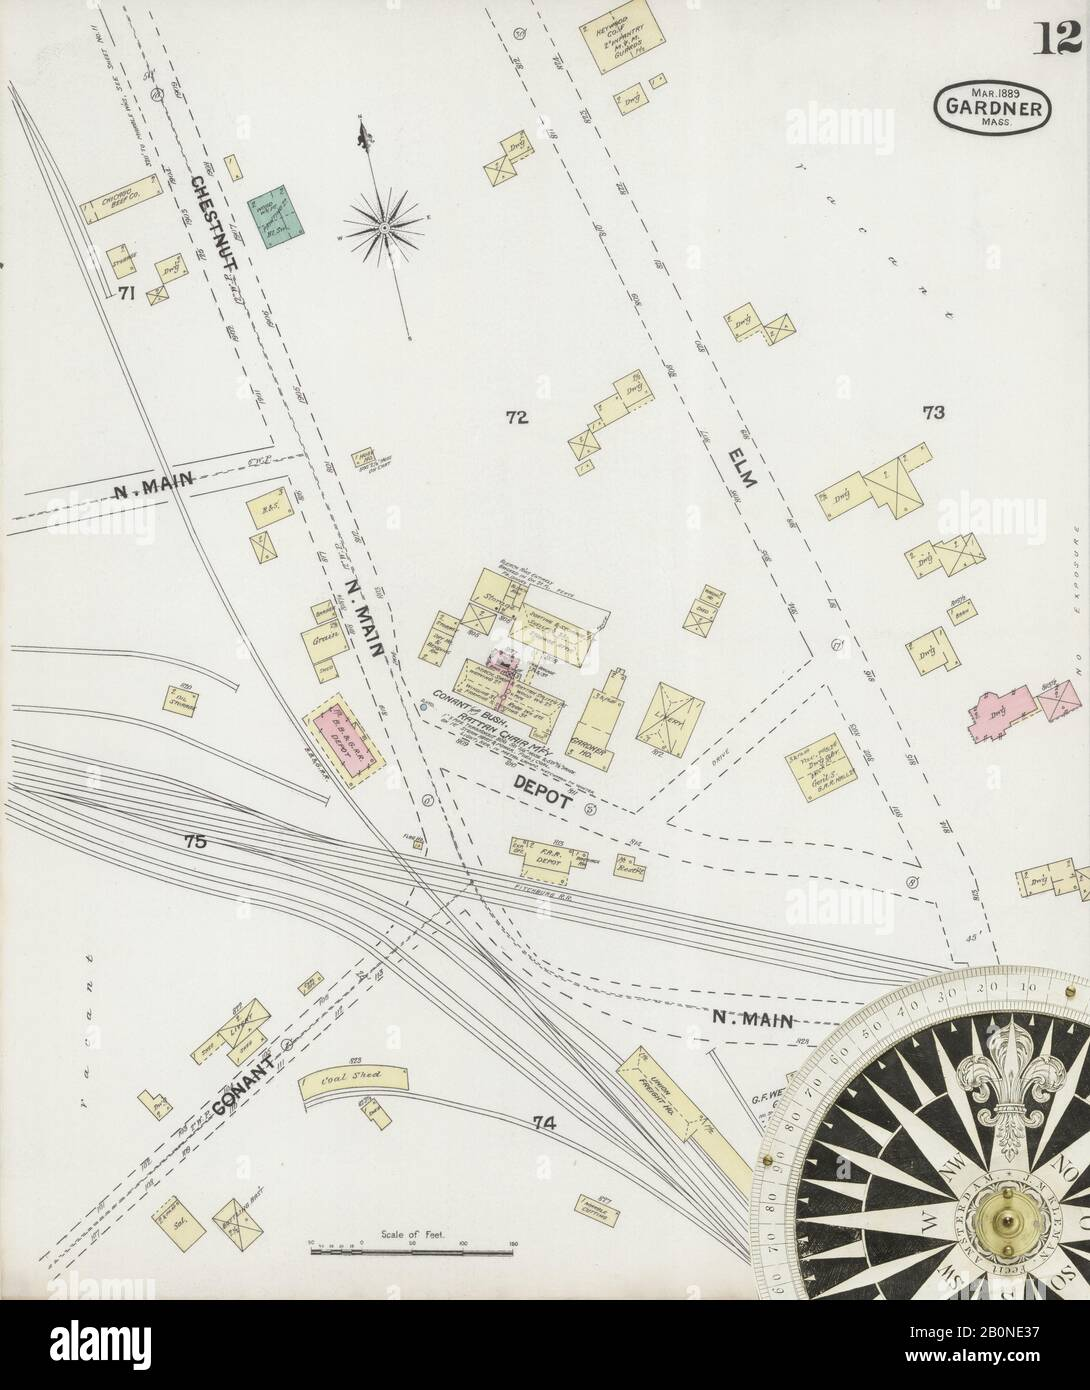 Image 12 of Sanborn Fire Insurance Map from Gardner, Worcester County, Massachusetts. Mar 1889. 12 Sheet(s), America, street map with a Nineteenth Century compass Stock Photo